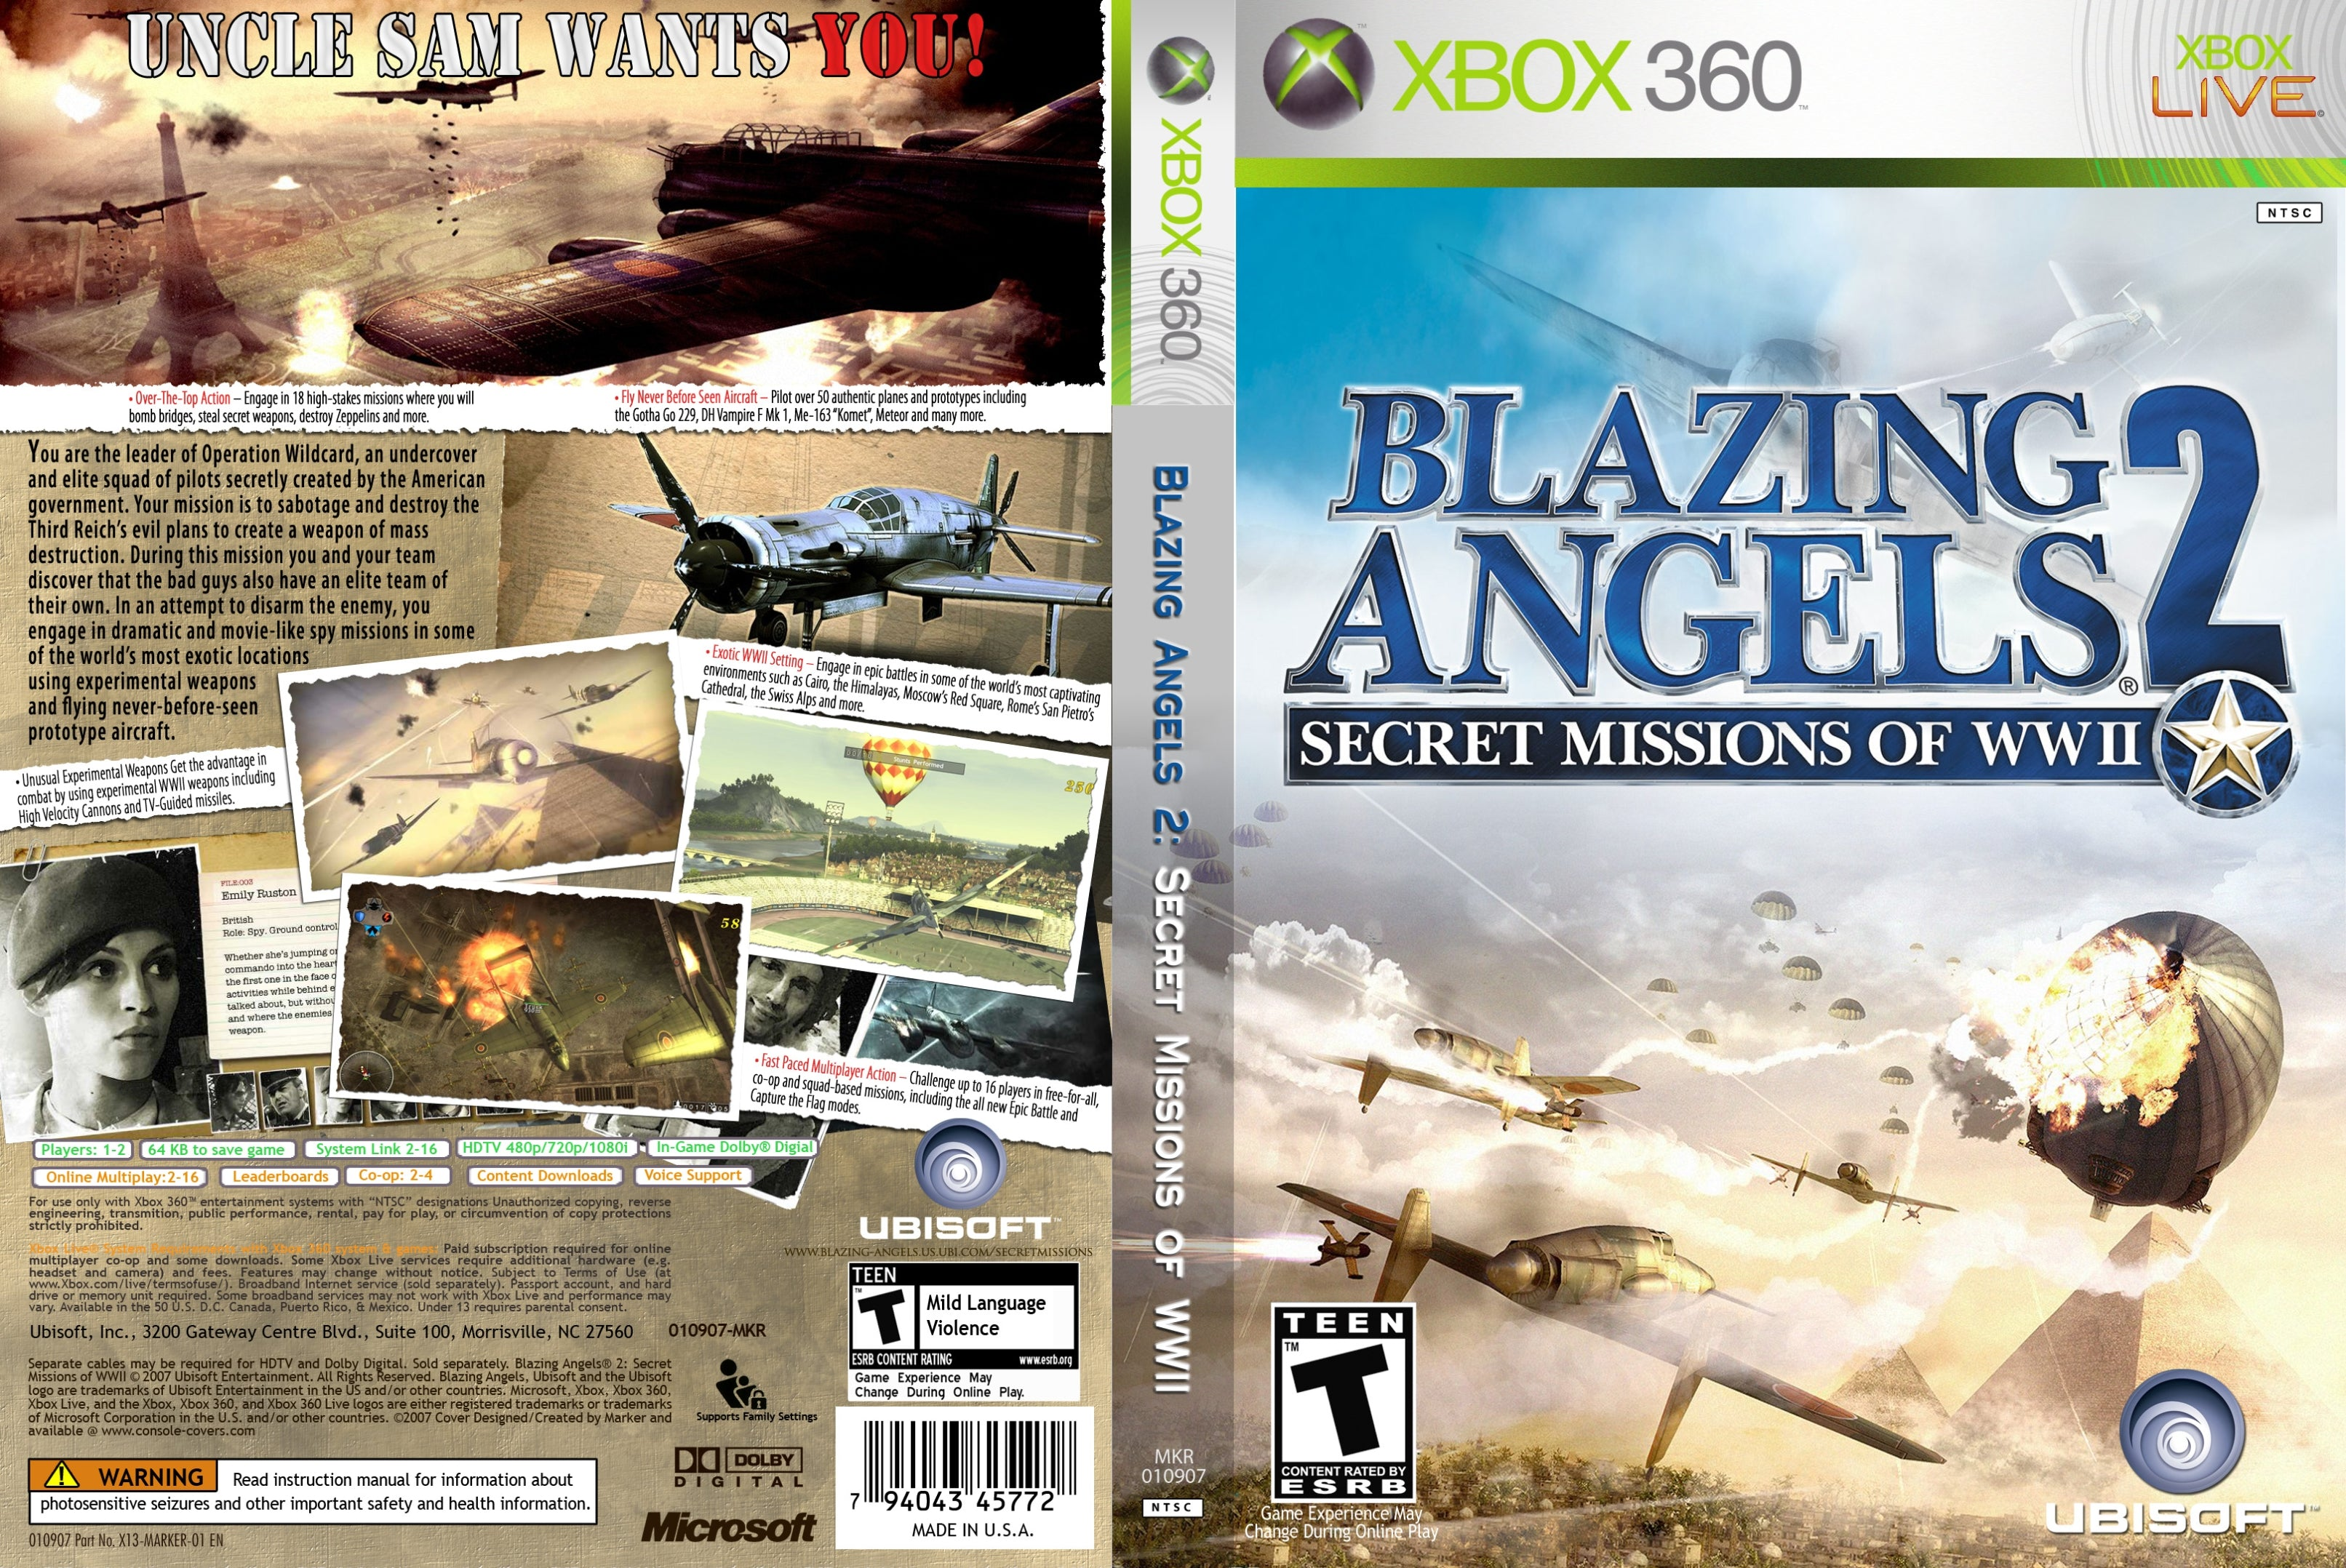 Cheats for blazing angels 2 pc.